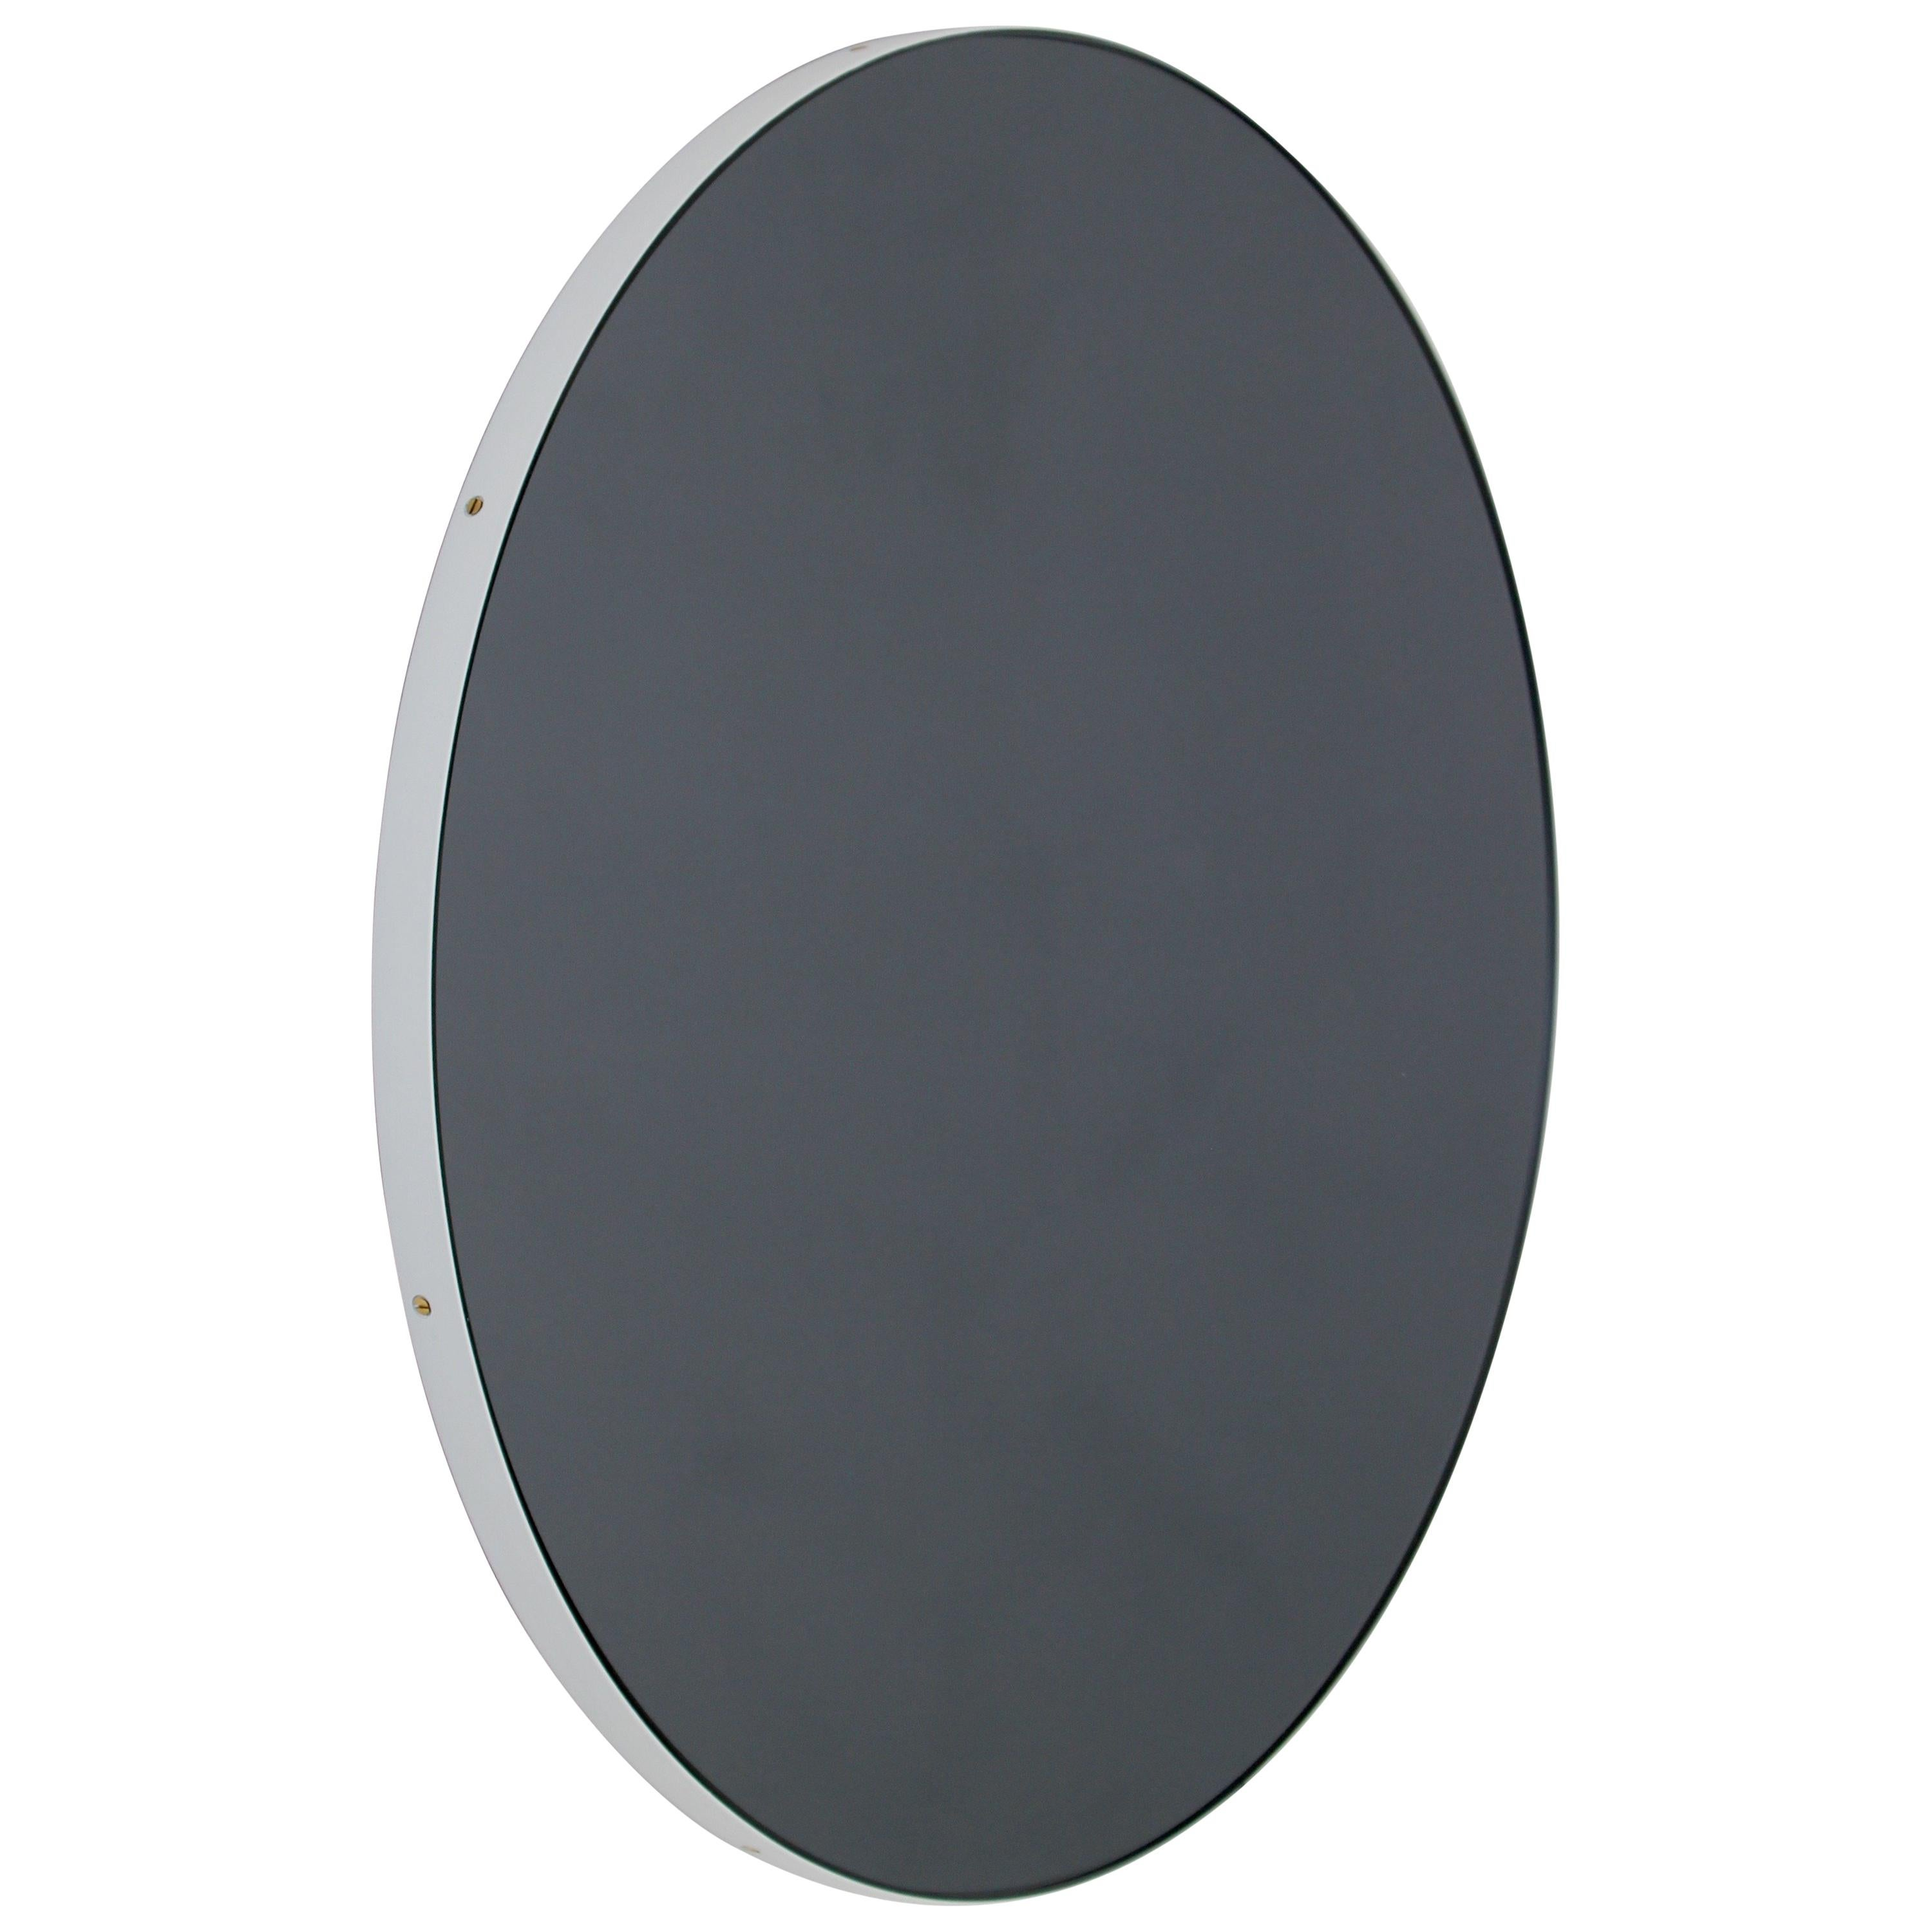 Orbis™ Black Tinted Bespoke Contemporary Round Mirror with White Frame - Large